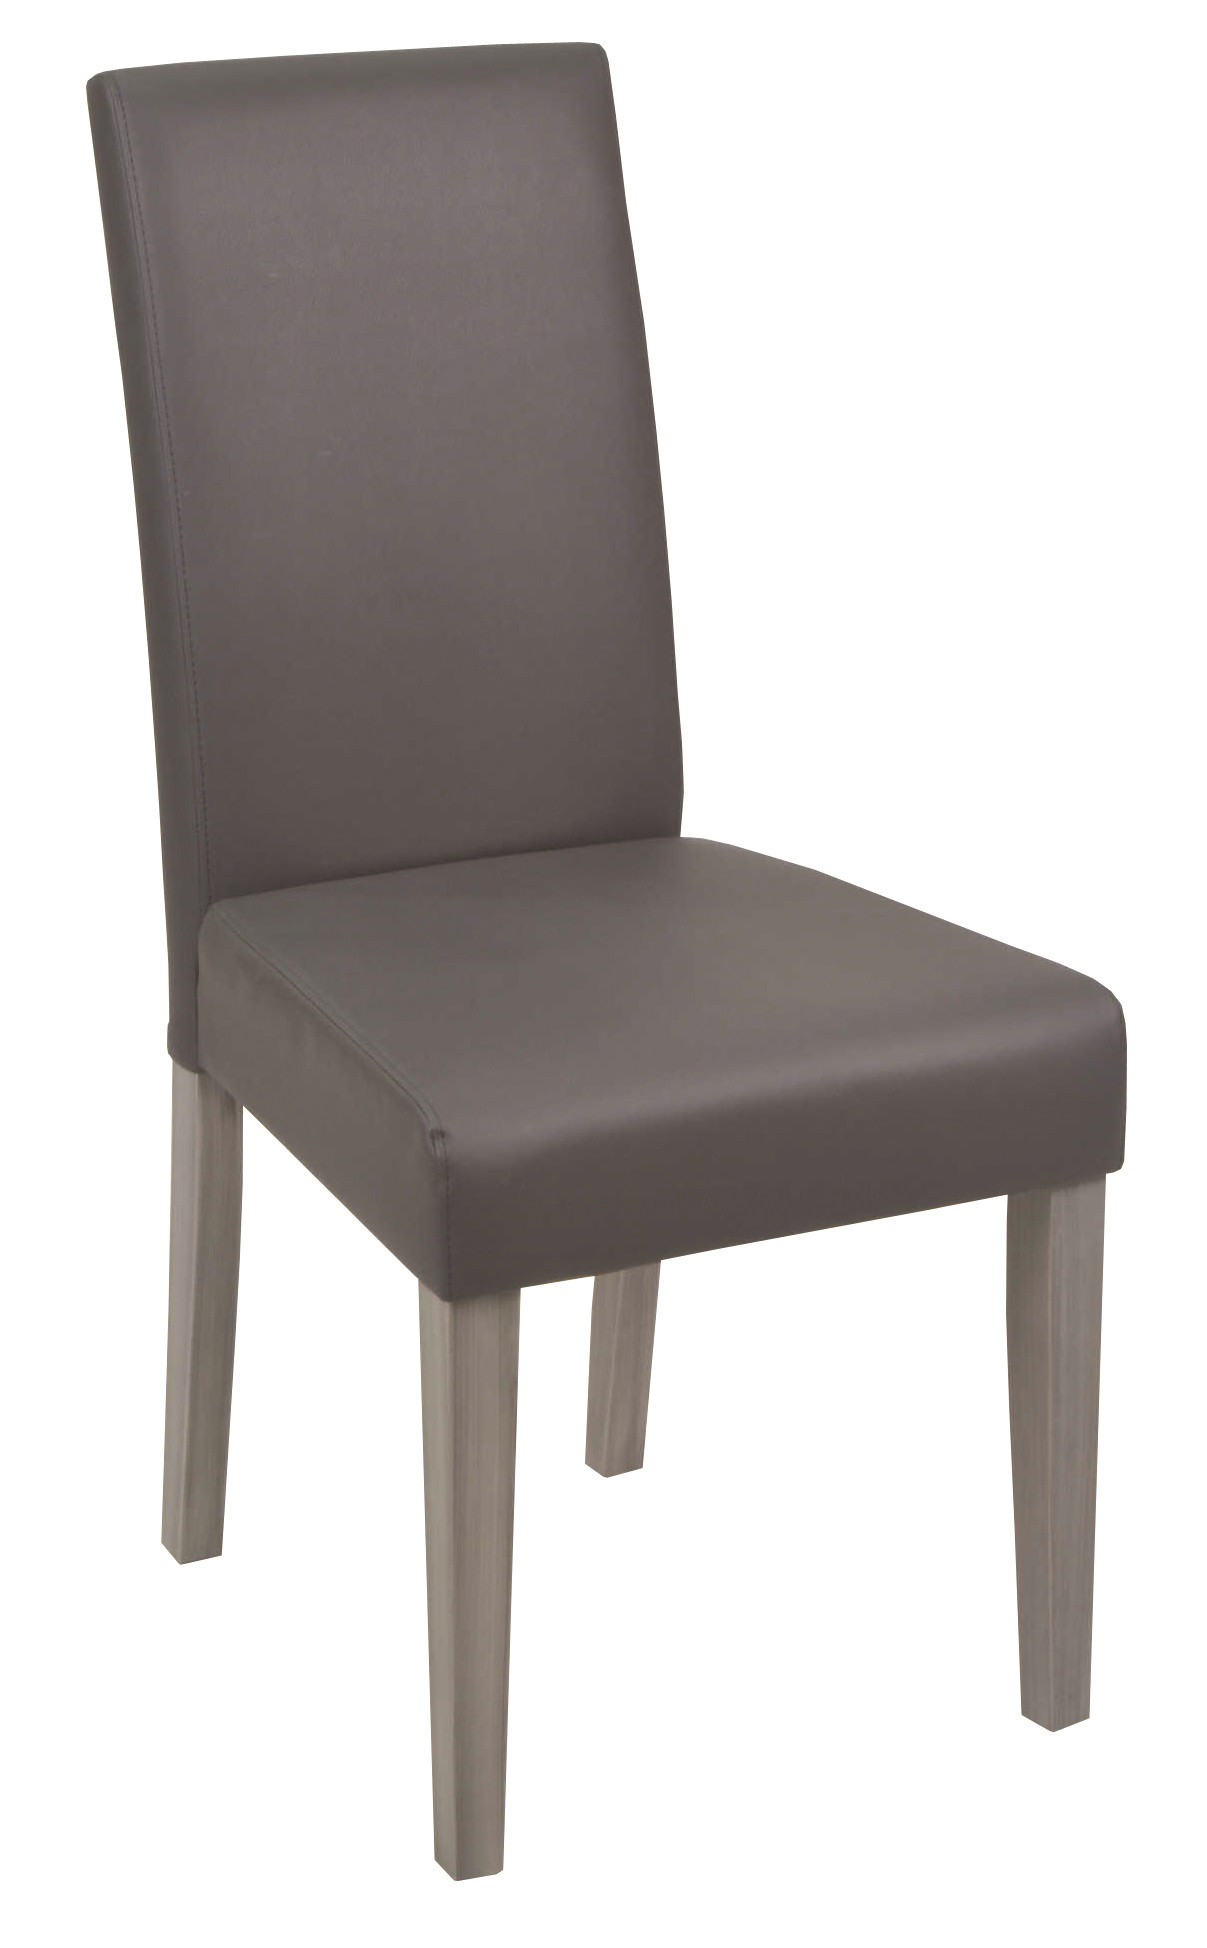 chaise grise